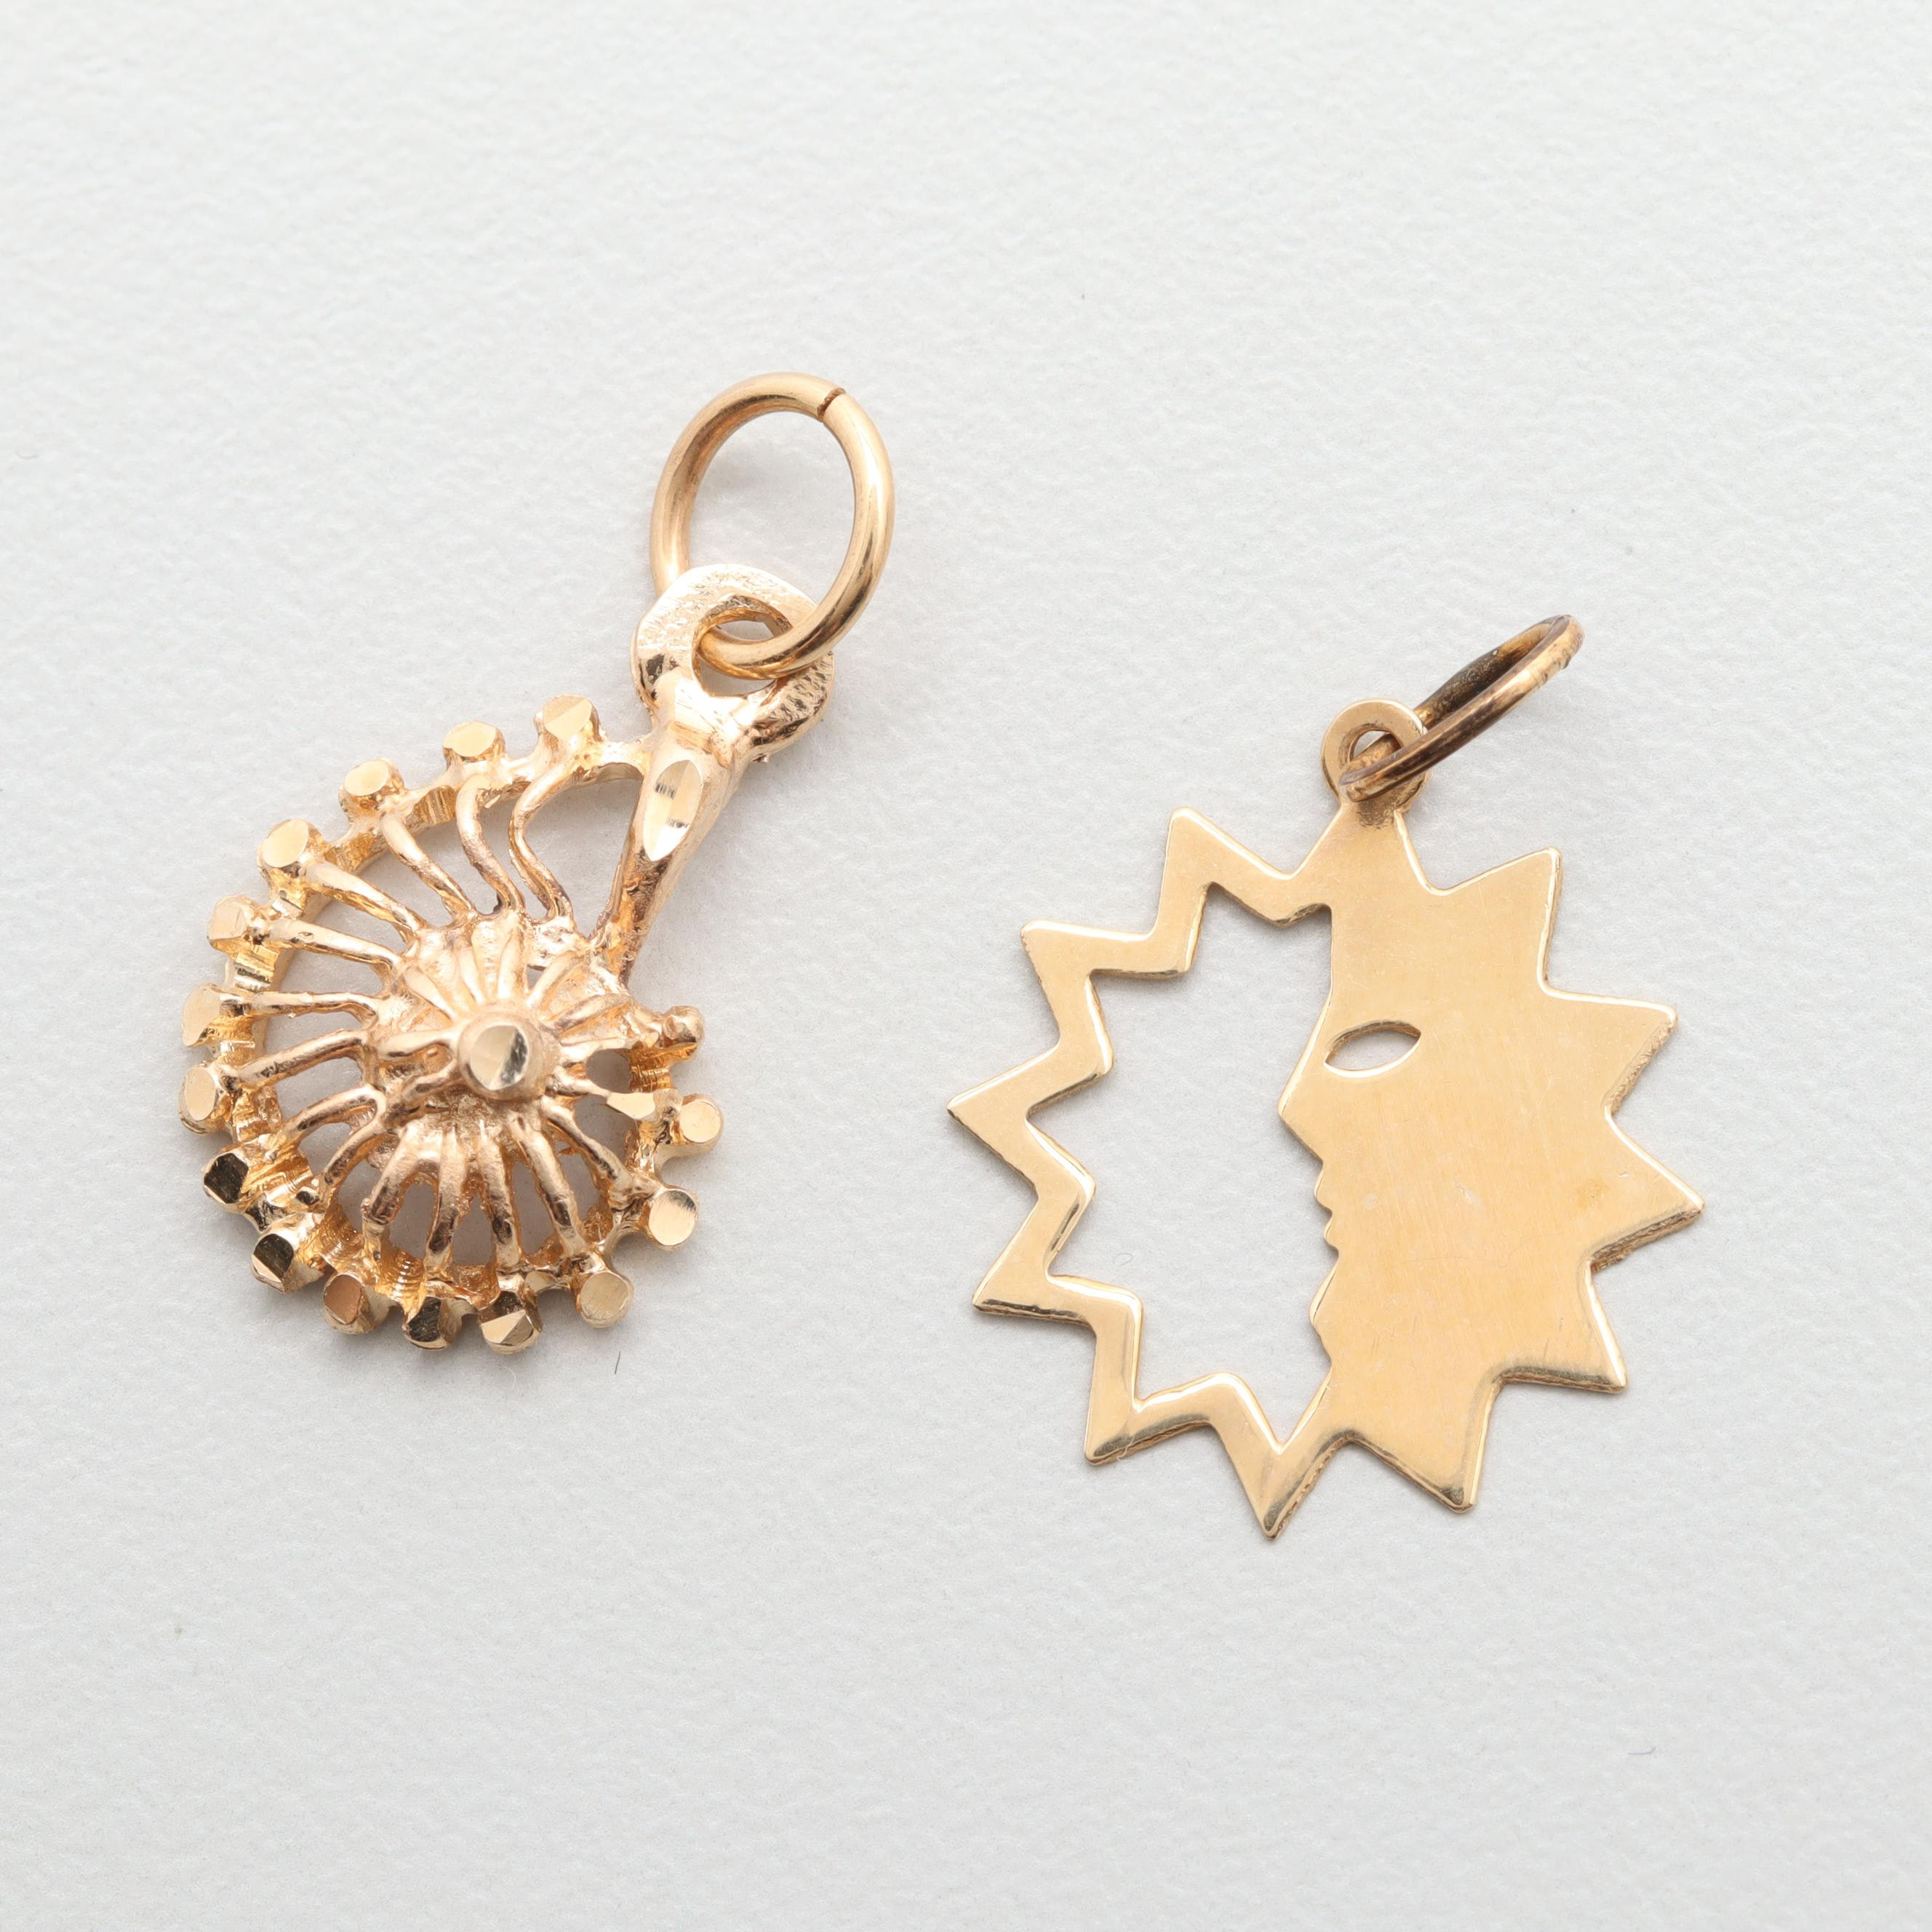 14K Yellow Gold Sun Face and Nautilus Shell Charms